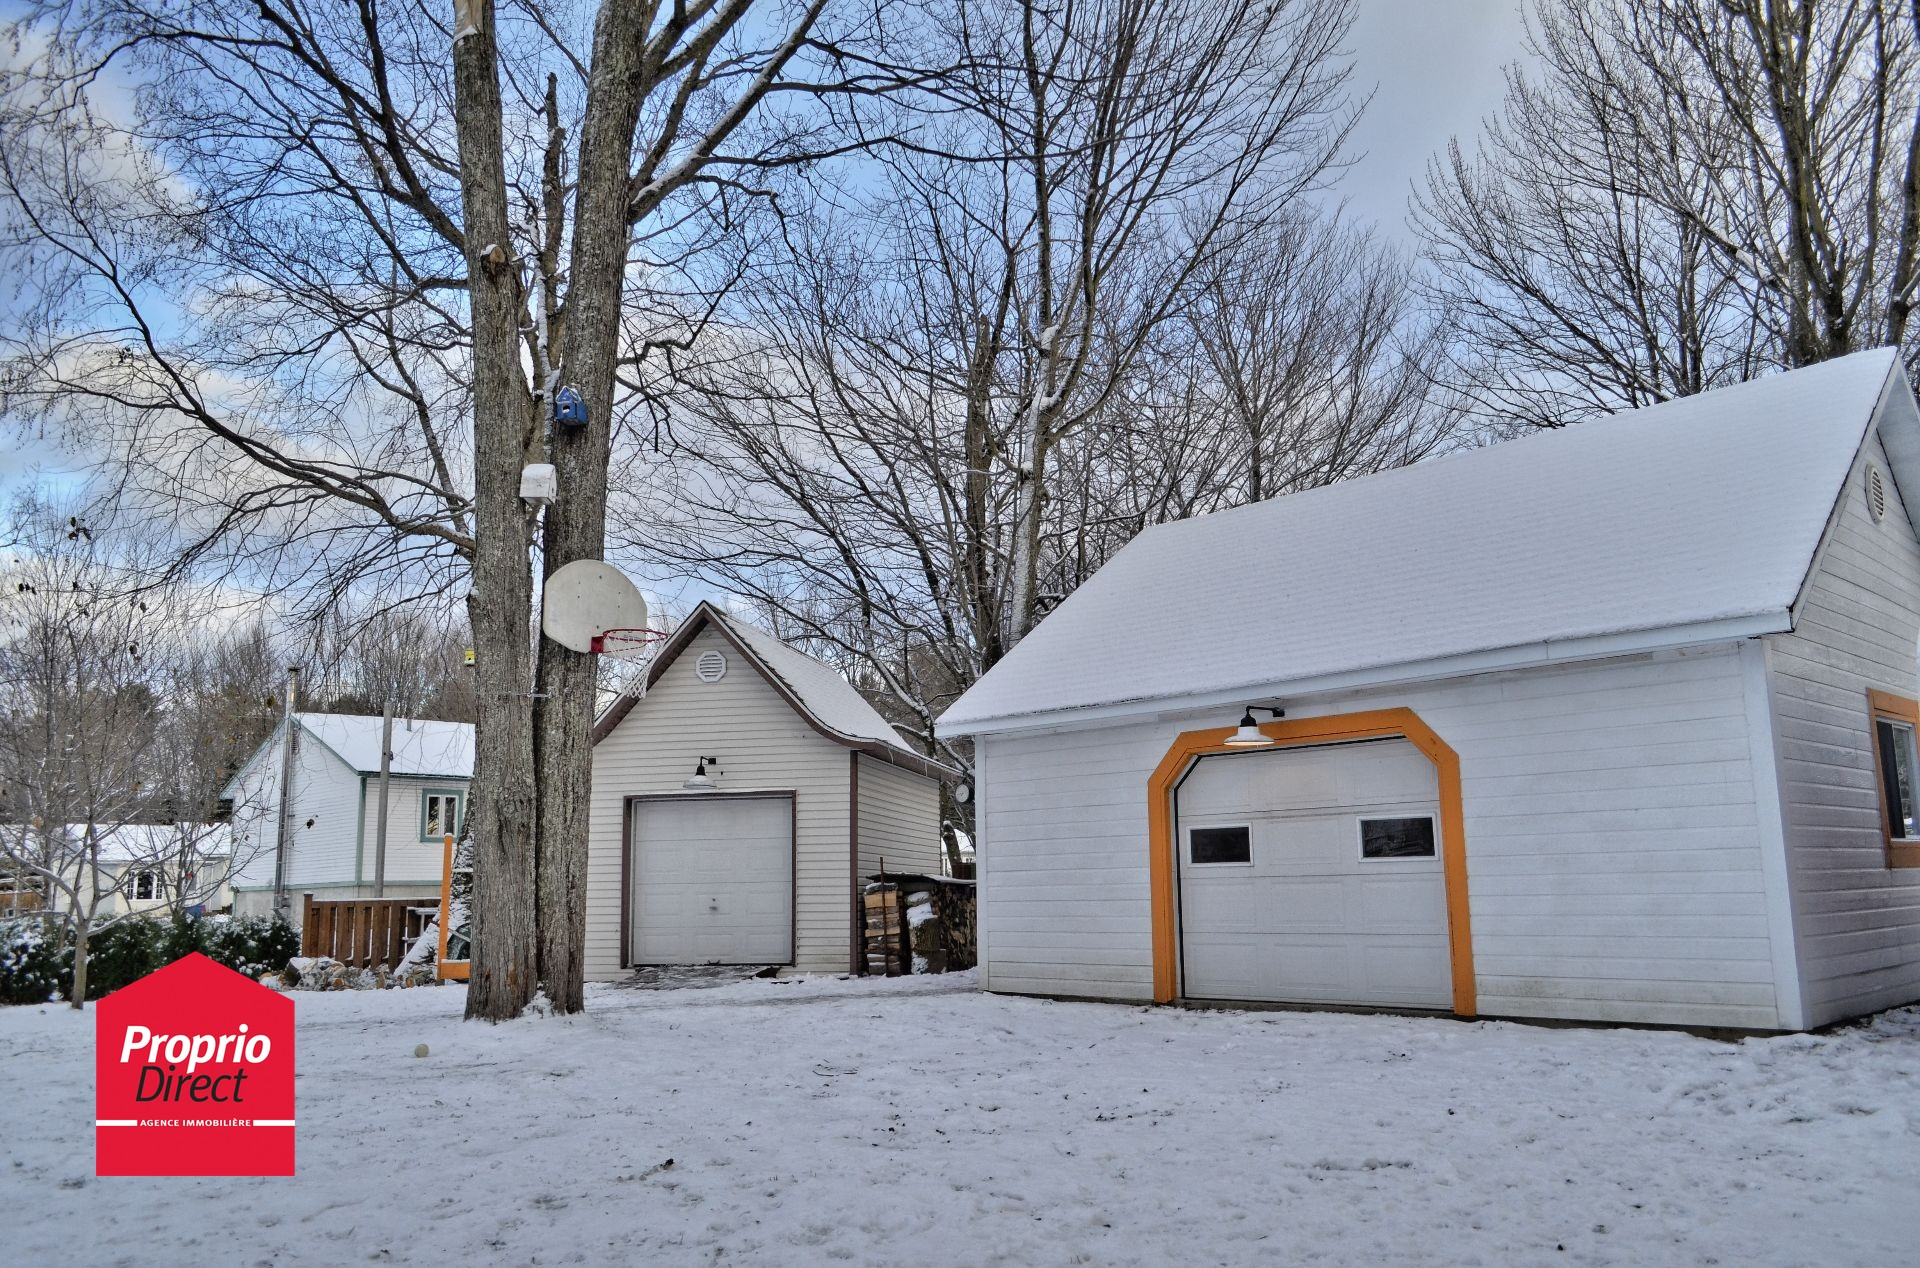 Maison tages vendre 220 8e avenue saint ambroise de for Garage ad sainte foy de peyroliere